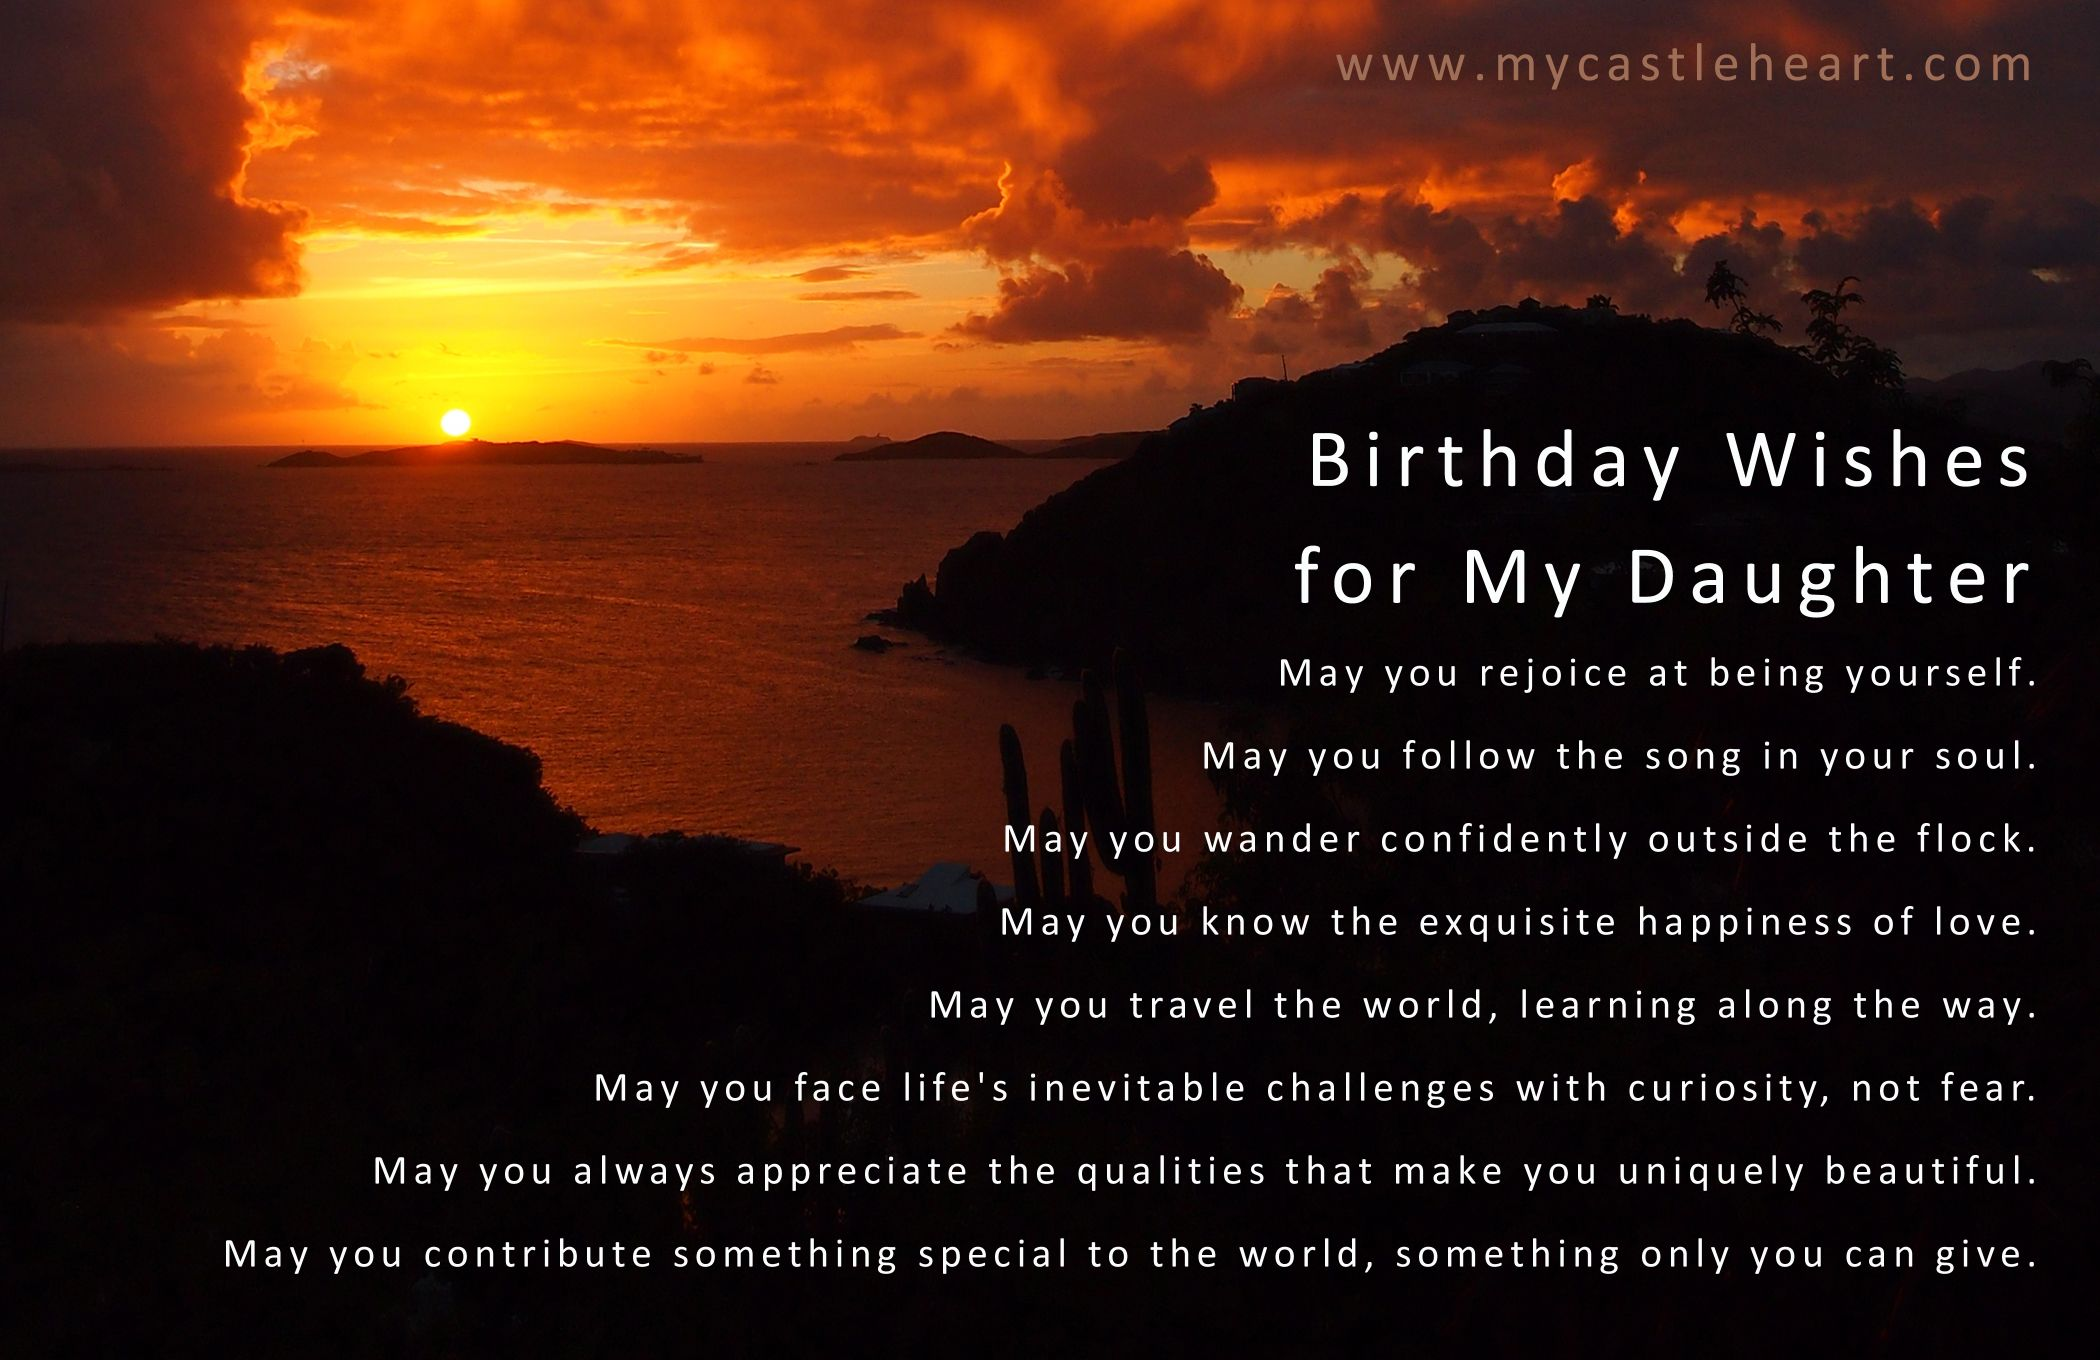 Birthday Wishes for My Daughter Get outside